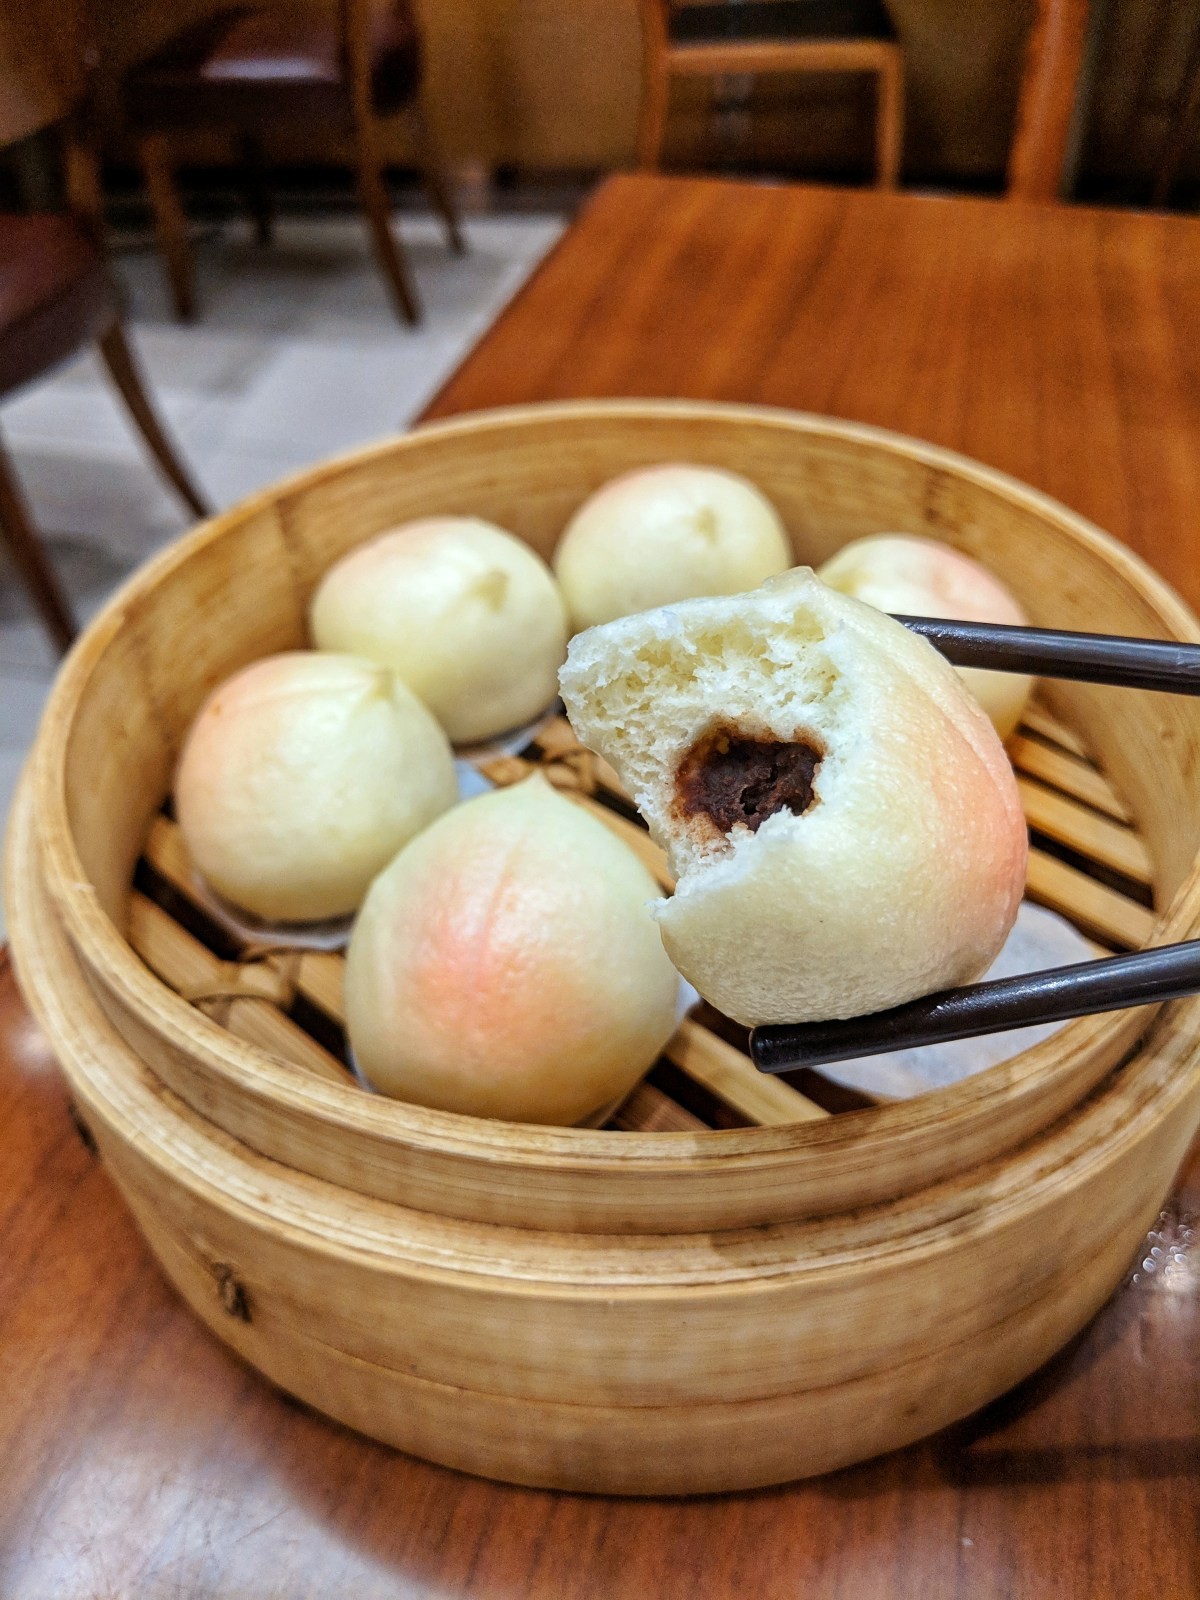 Steamed peach buns filled with red bean pasta from Din Tai Fung in Hong Kong